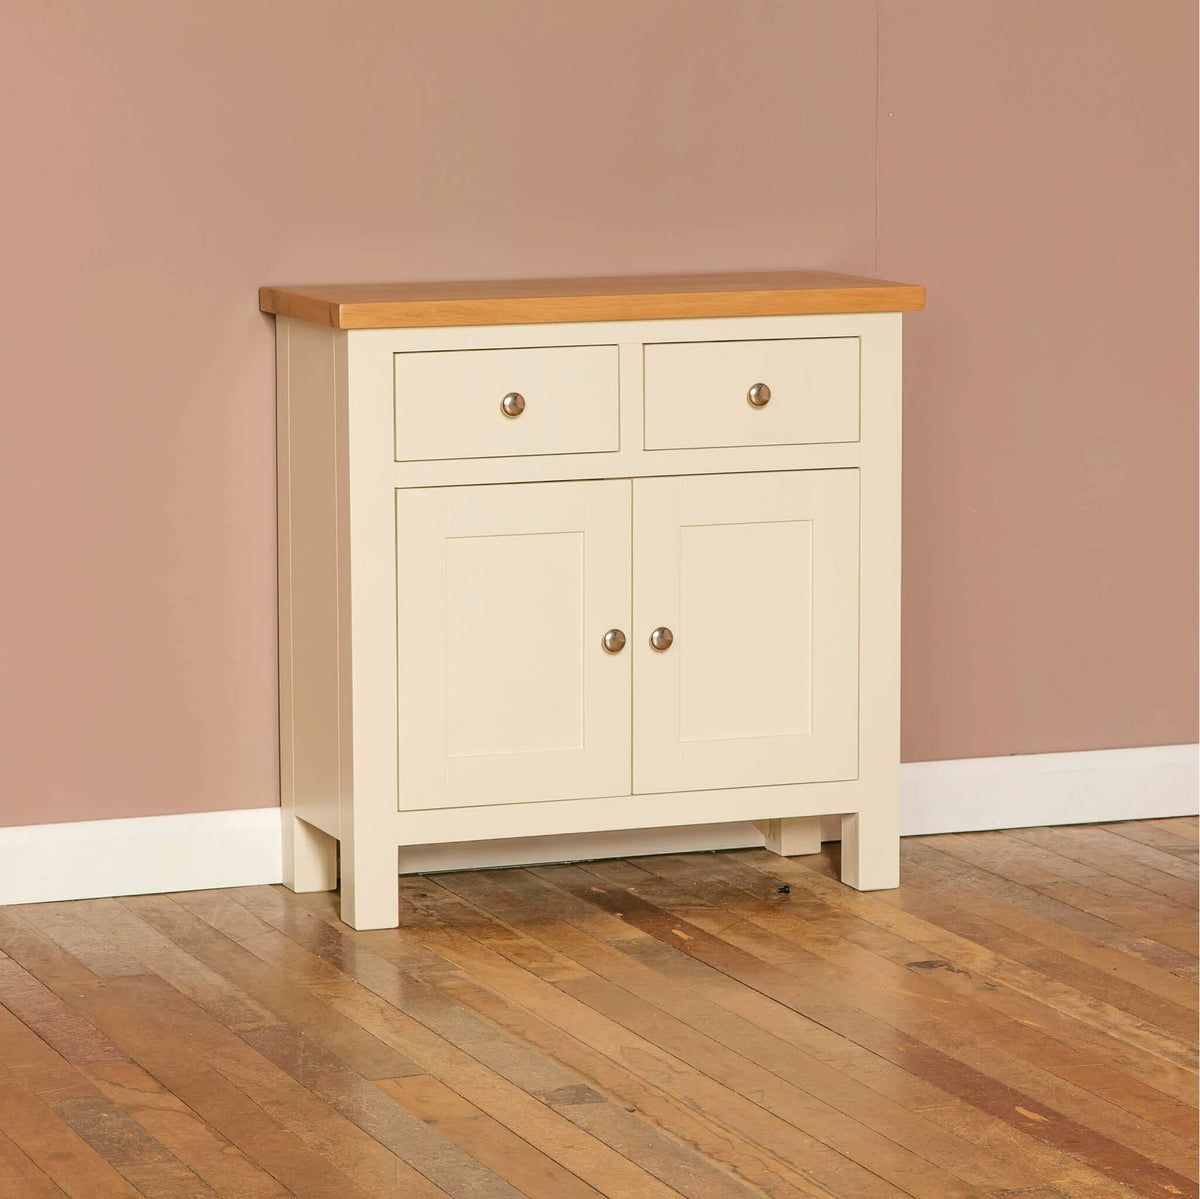 Farrow Cream 2 cupboard 2 drawer mini sideboard unit by Roseland Furniture